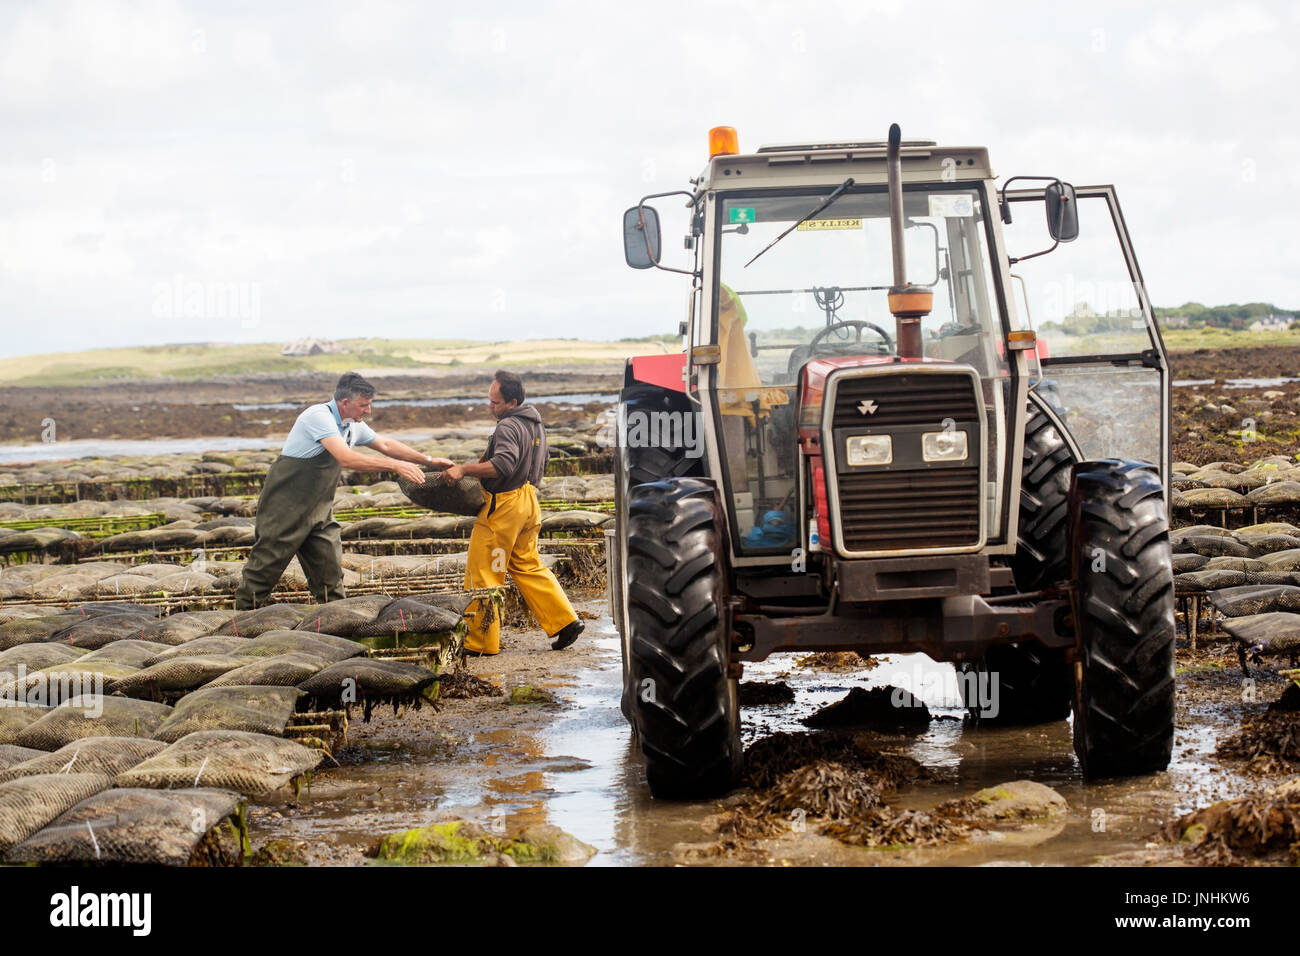 Oyster farm Kilcolgan, county Galway, July 2016. Tractor carrying oysters in metal bags. Kellys Oysters is family Stock Photo